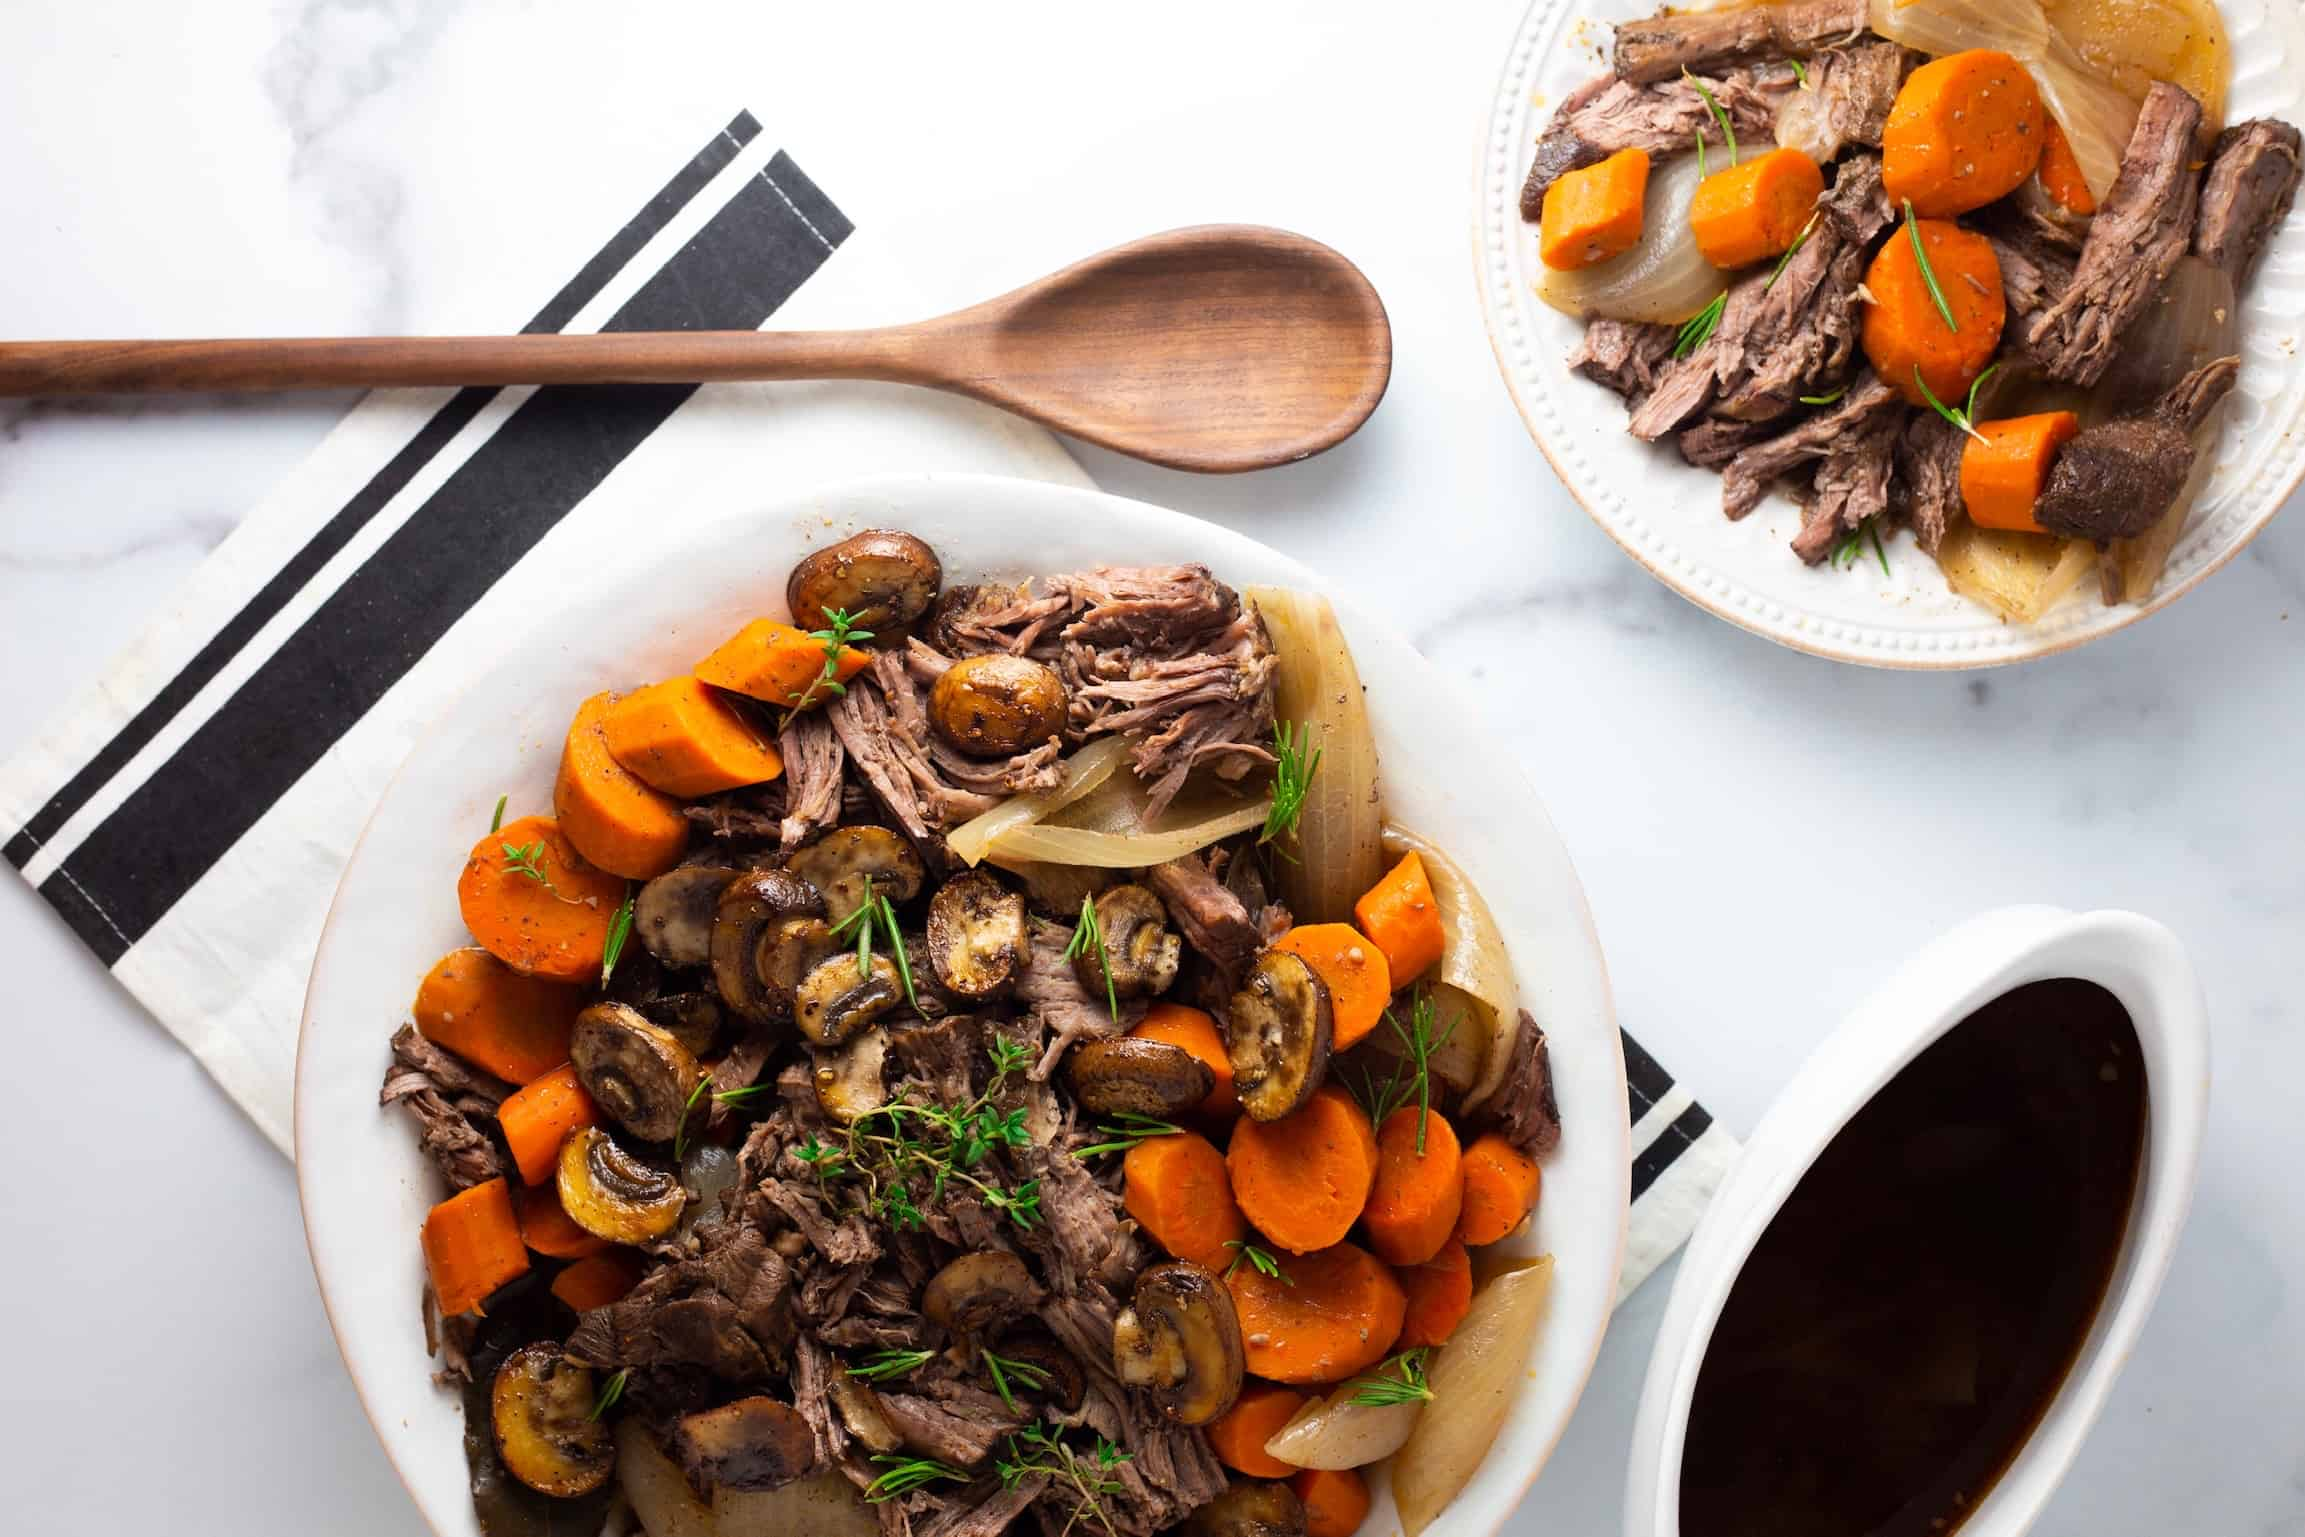 Serving platter and plate with pot roast and carrots with wooden spoon and au jus